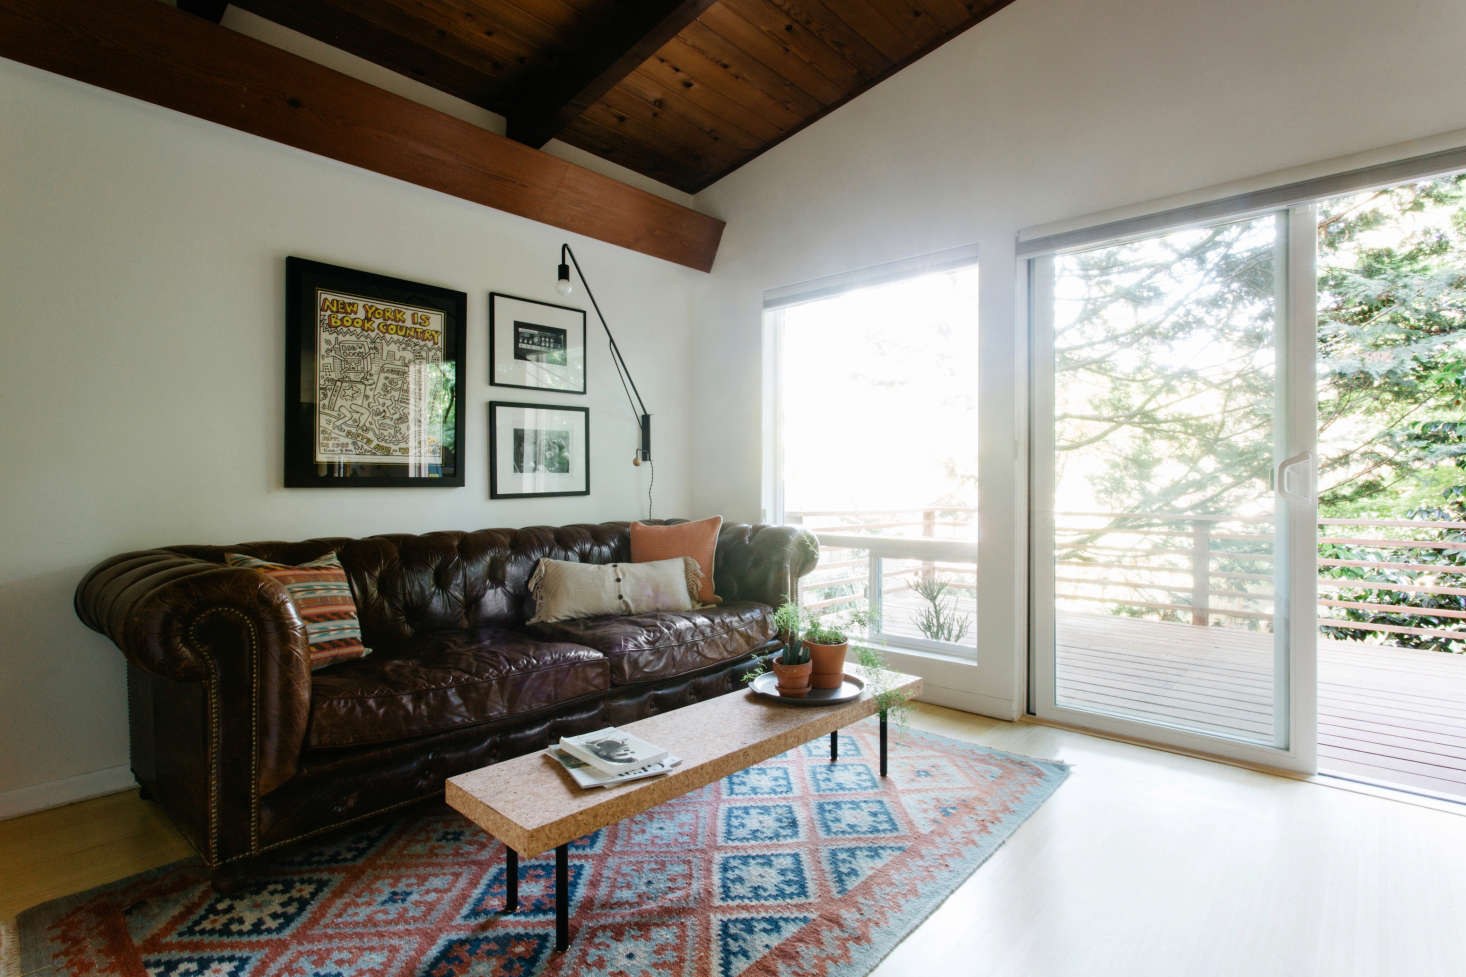 The homeowners brought the tufted leather sofa with them from their previous home, a Portland craftsman. Aboveit hangsaPotence Style Otis Lamp from One Forty Three.